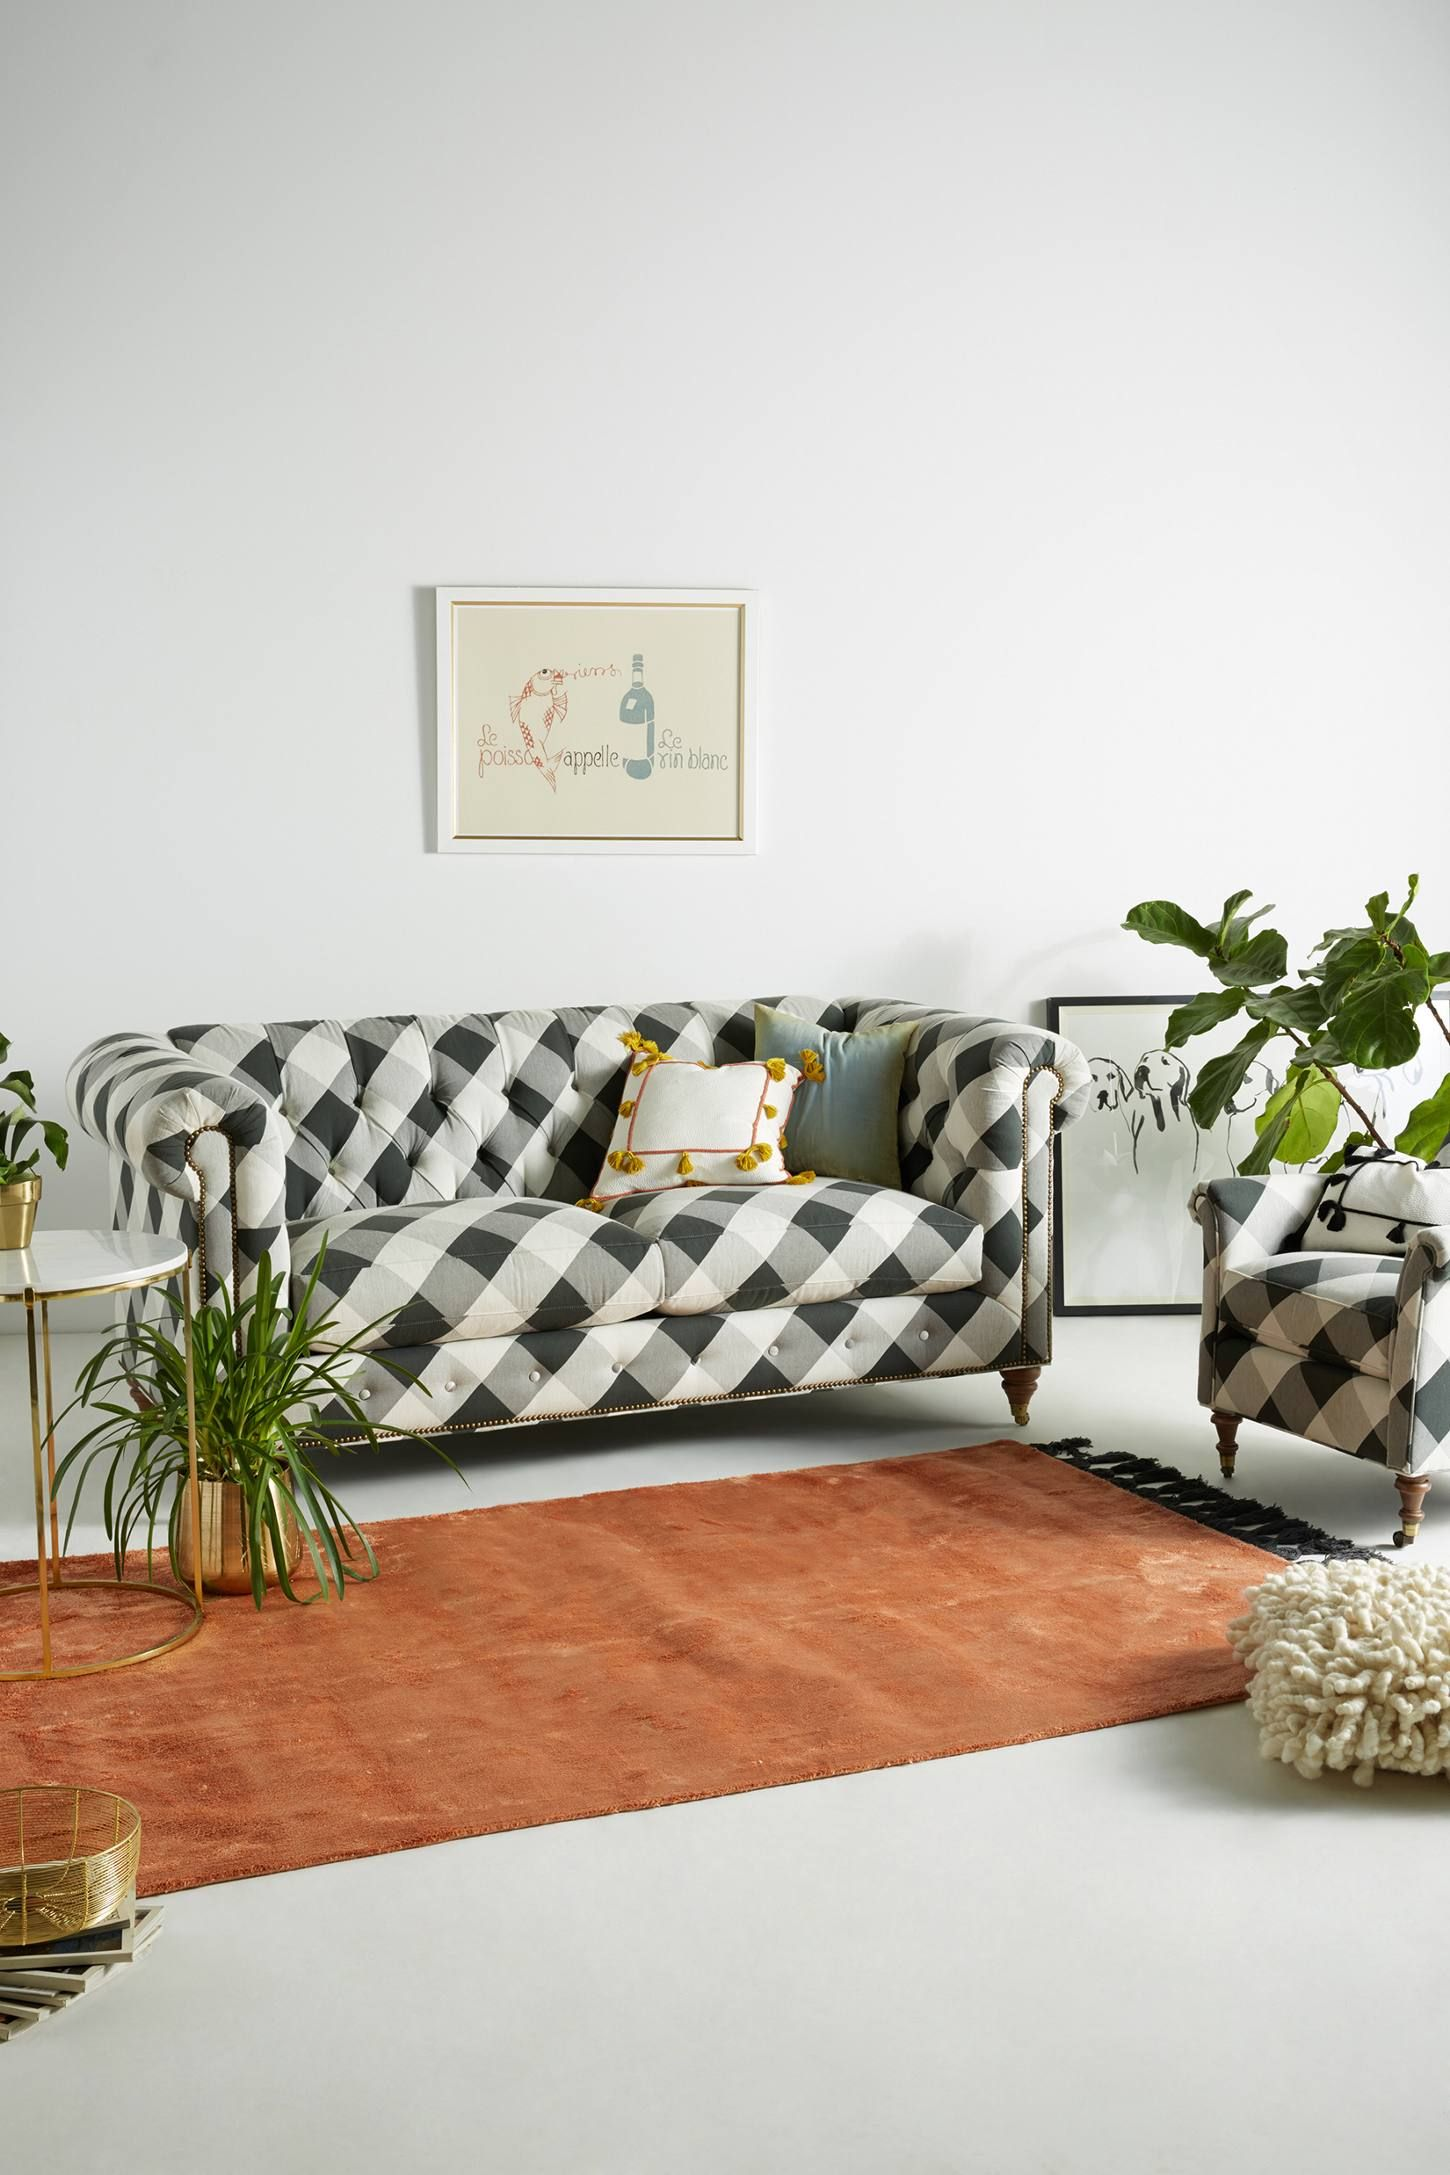 Sofa And More Site Da E Colchoes Buffalo Check Lyre Chesterfield Two Cushion Decor The Shop Anthropologie At Today Read Customer Reviews Discover Product Details